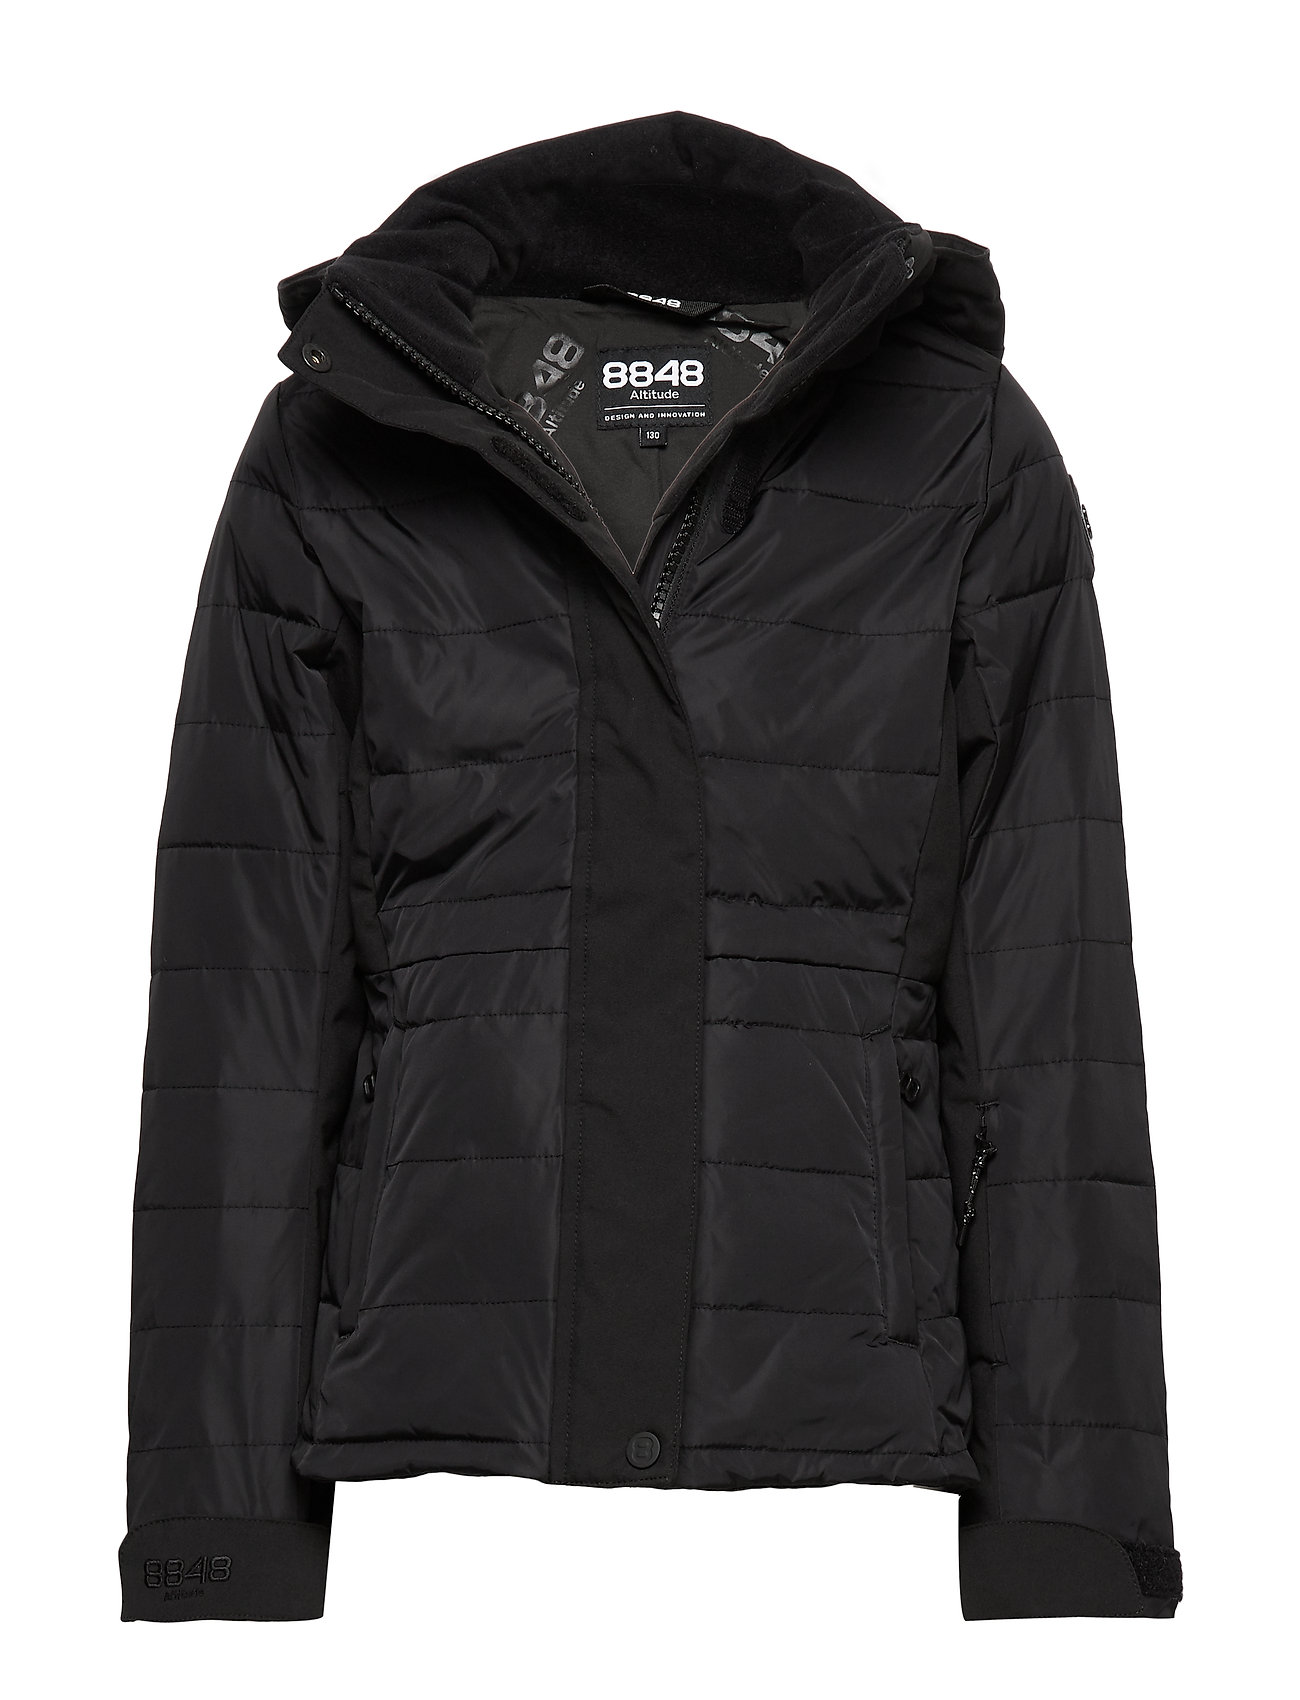 8848 Altitude Mini JR Jacket - BLACK